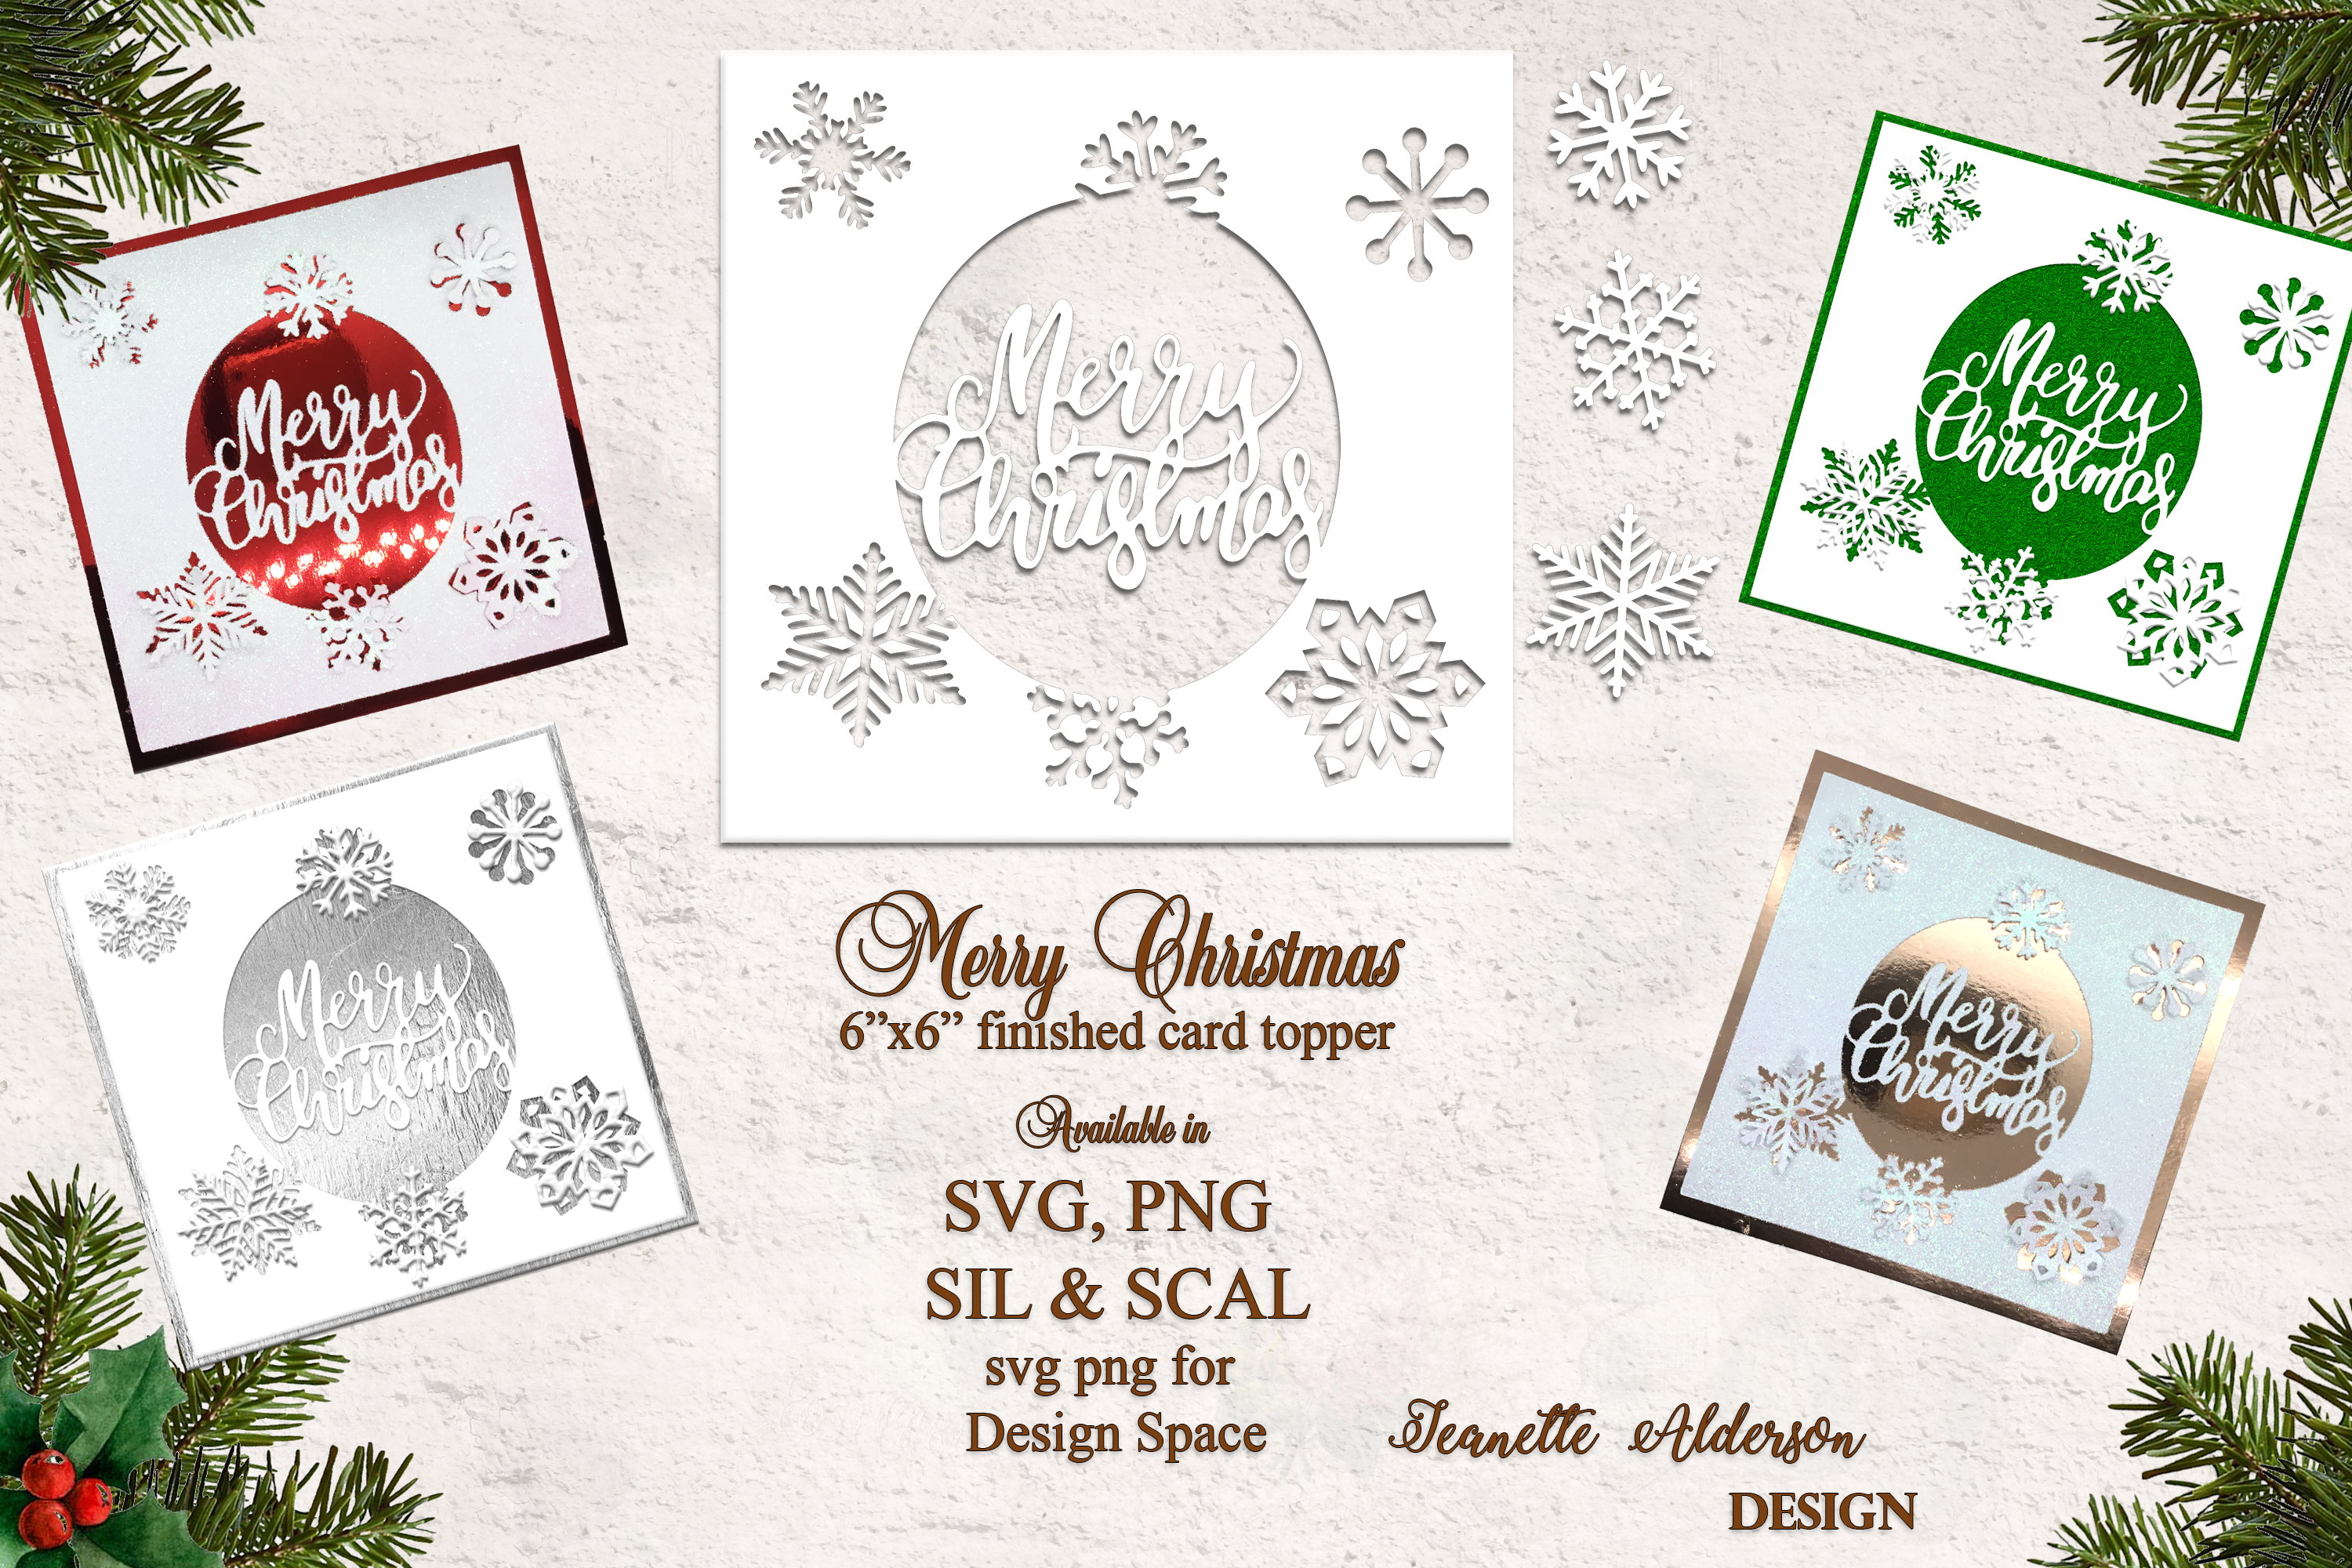 6 Amp Quot X 6 Amp Quot Merry Christmas Card Topper By Jeanette